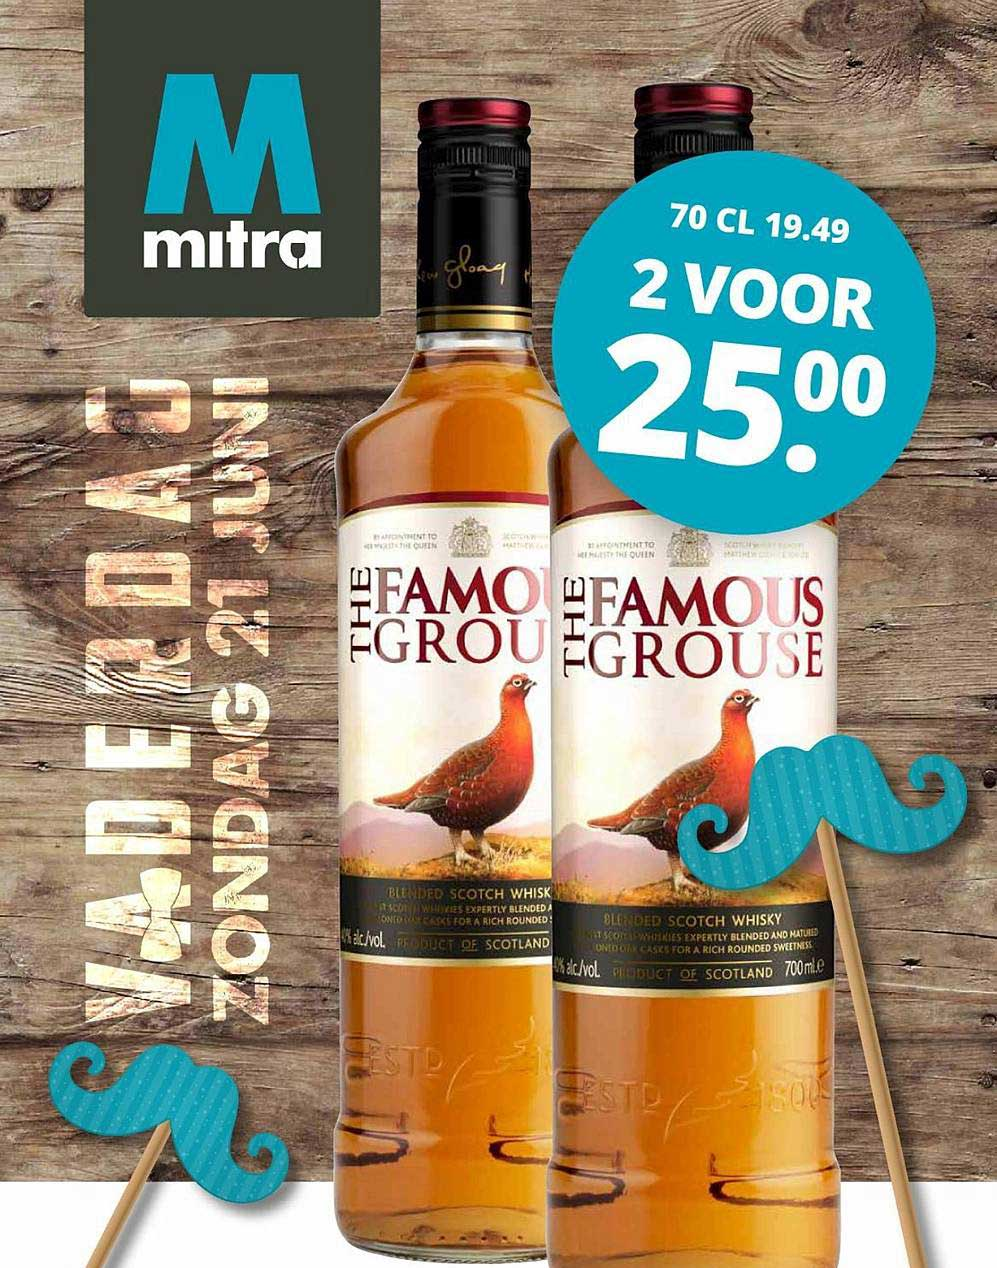 Mitra The Famous Grouse